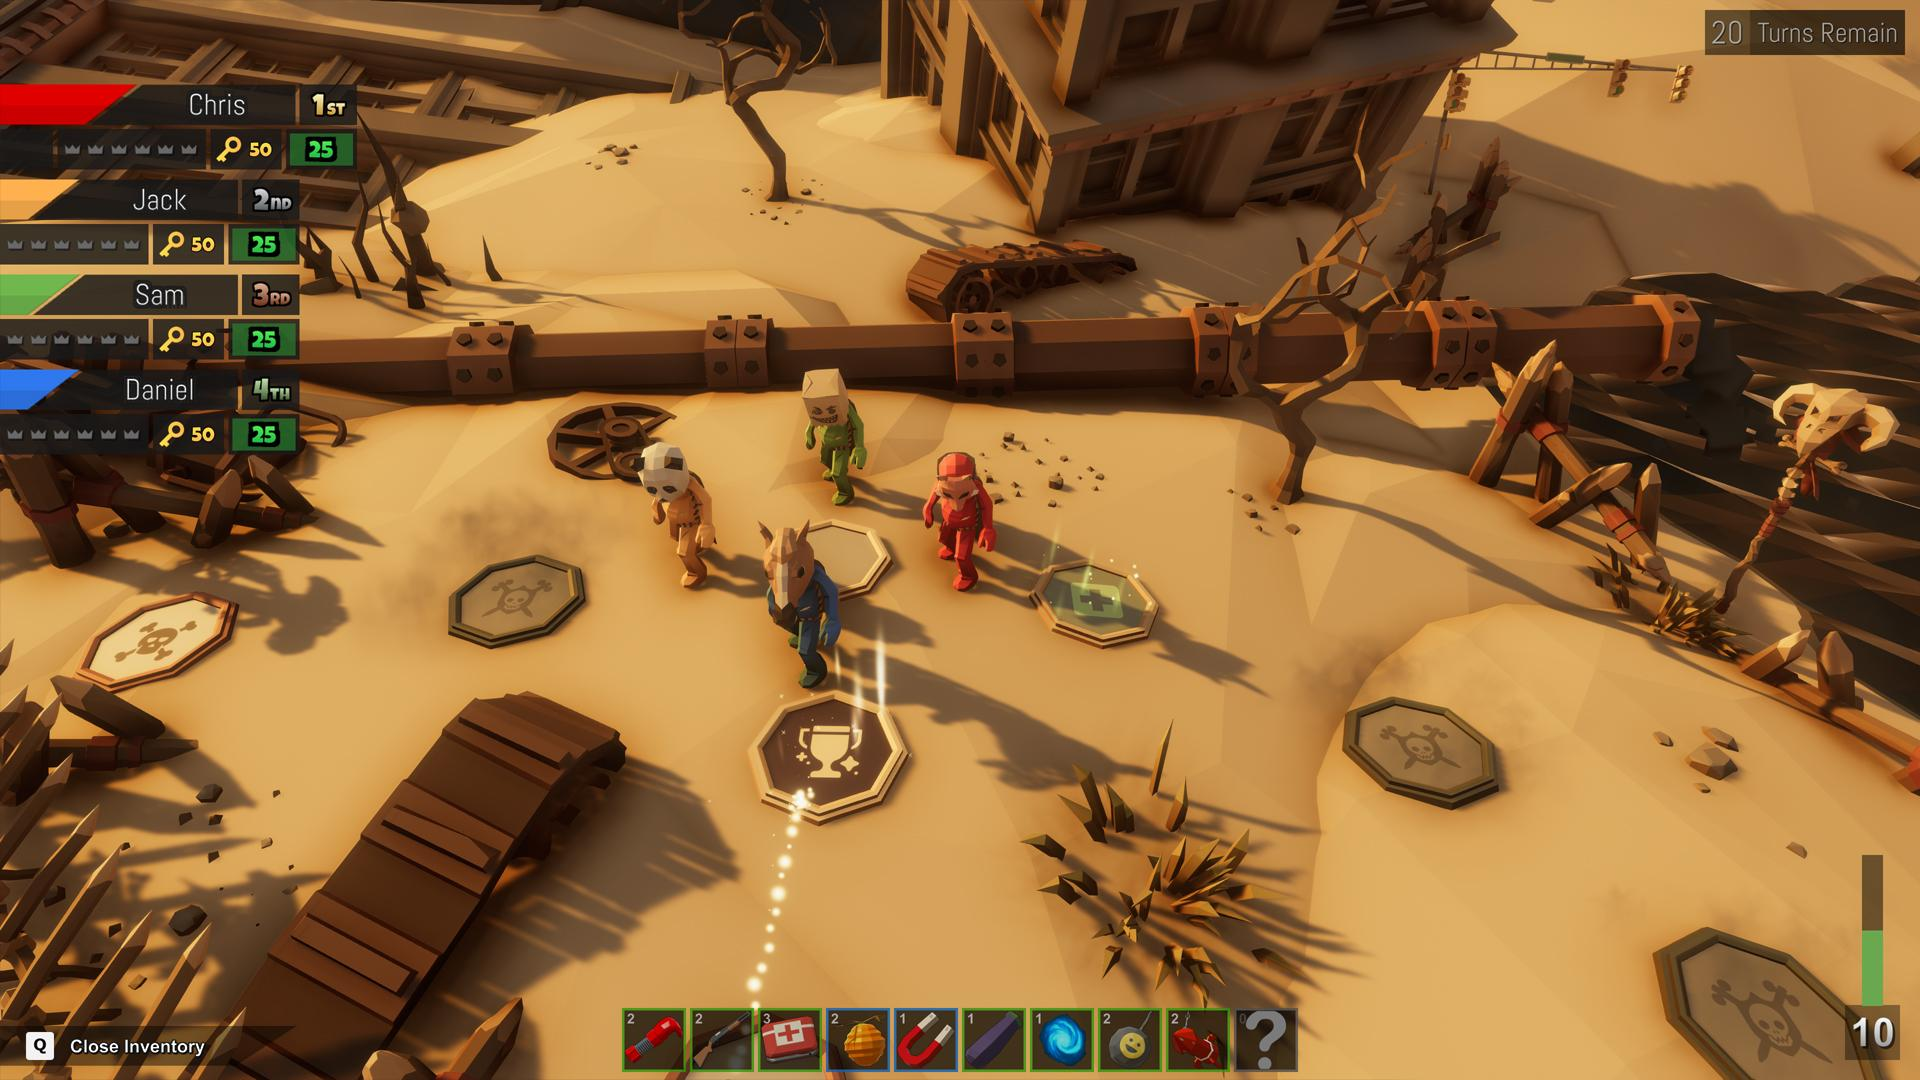 Pummel Party is a chaotic party game that mixes board game races with various minigames